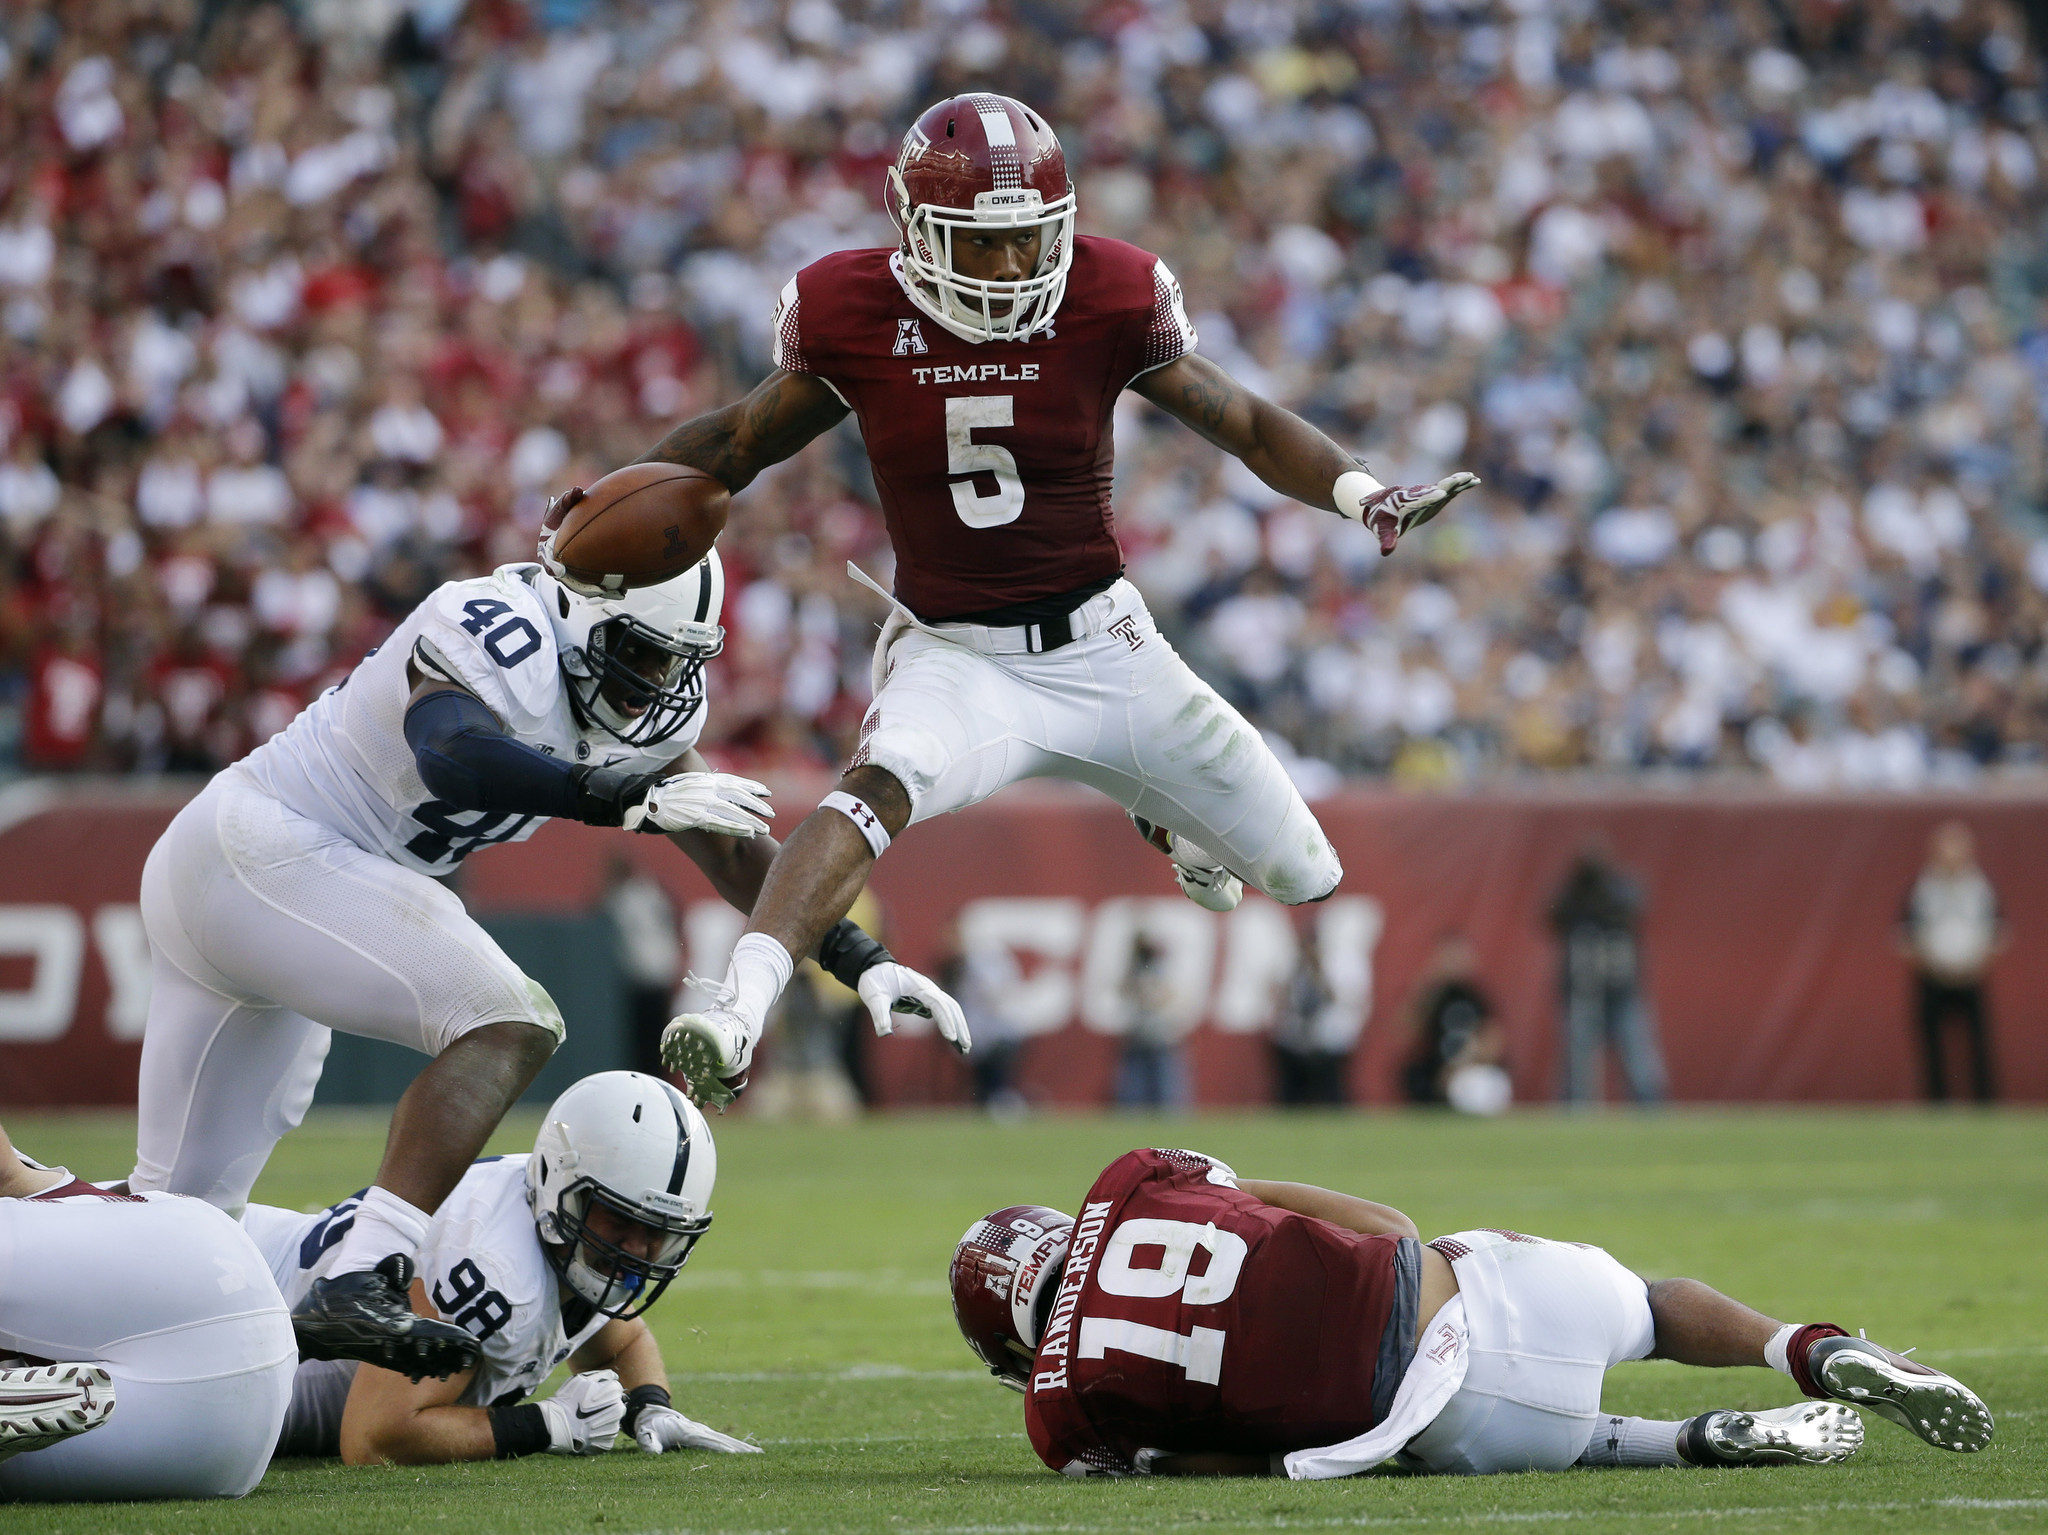 College Football Countdown: No. 40 Temple - Orlando Sentinel